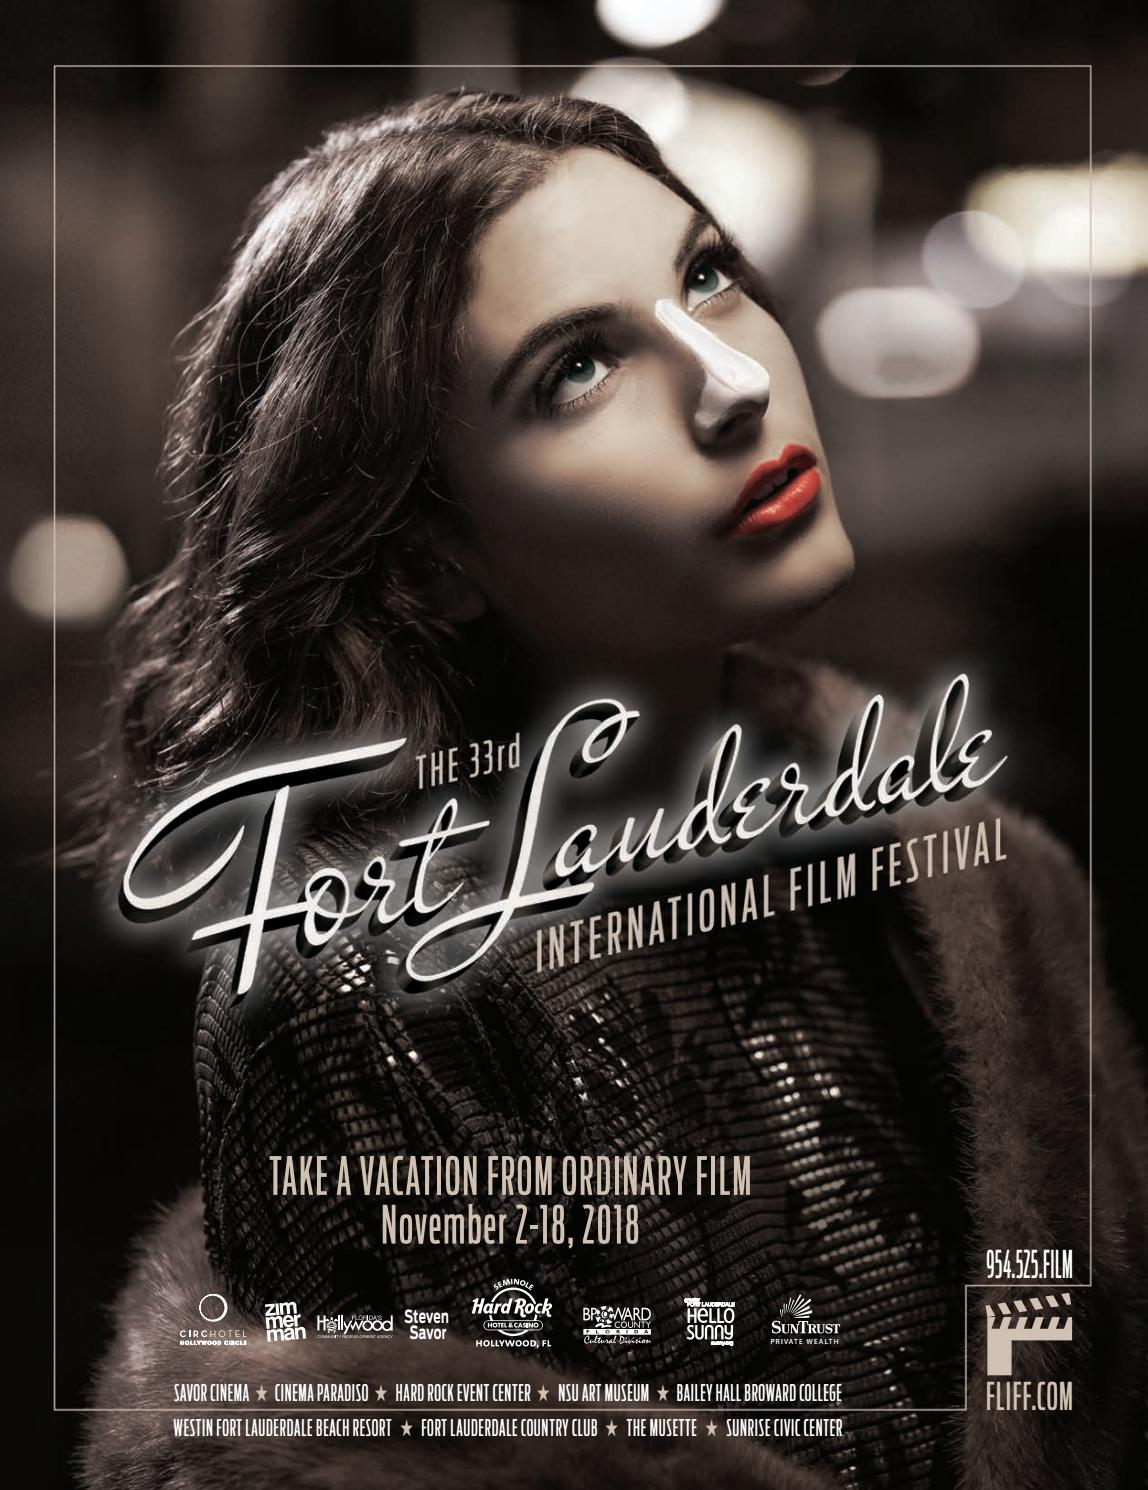 Angelica Bella Film 2018 fort lauderdale international film festival program